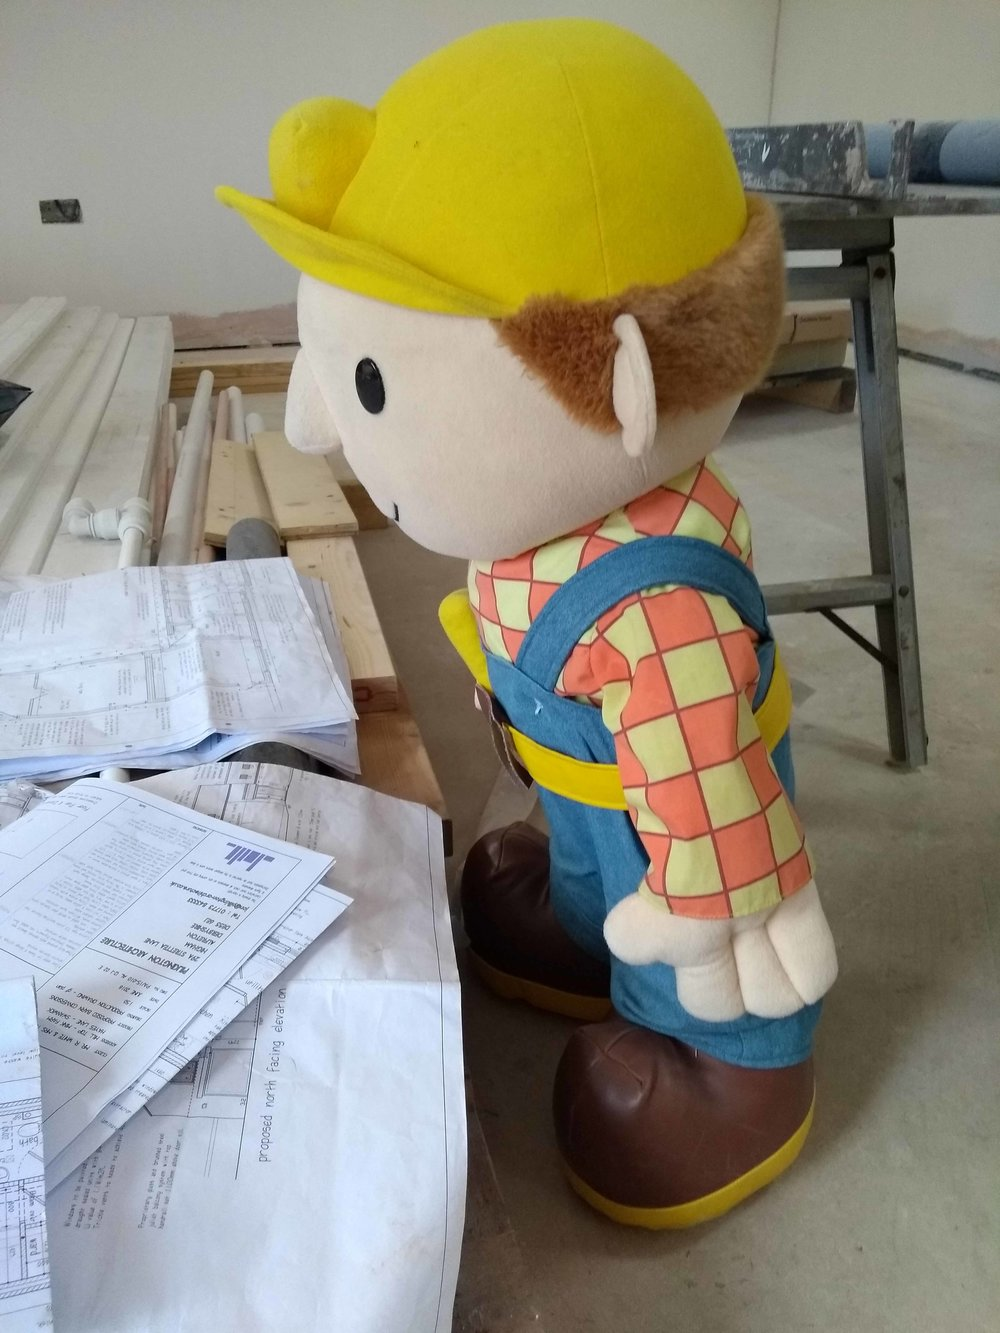 Bob the Builder  - Checking the plans